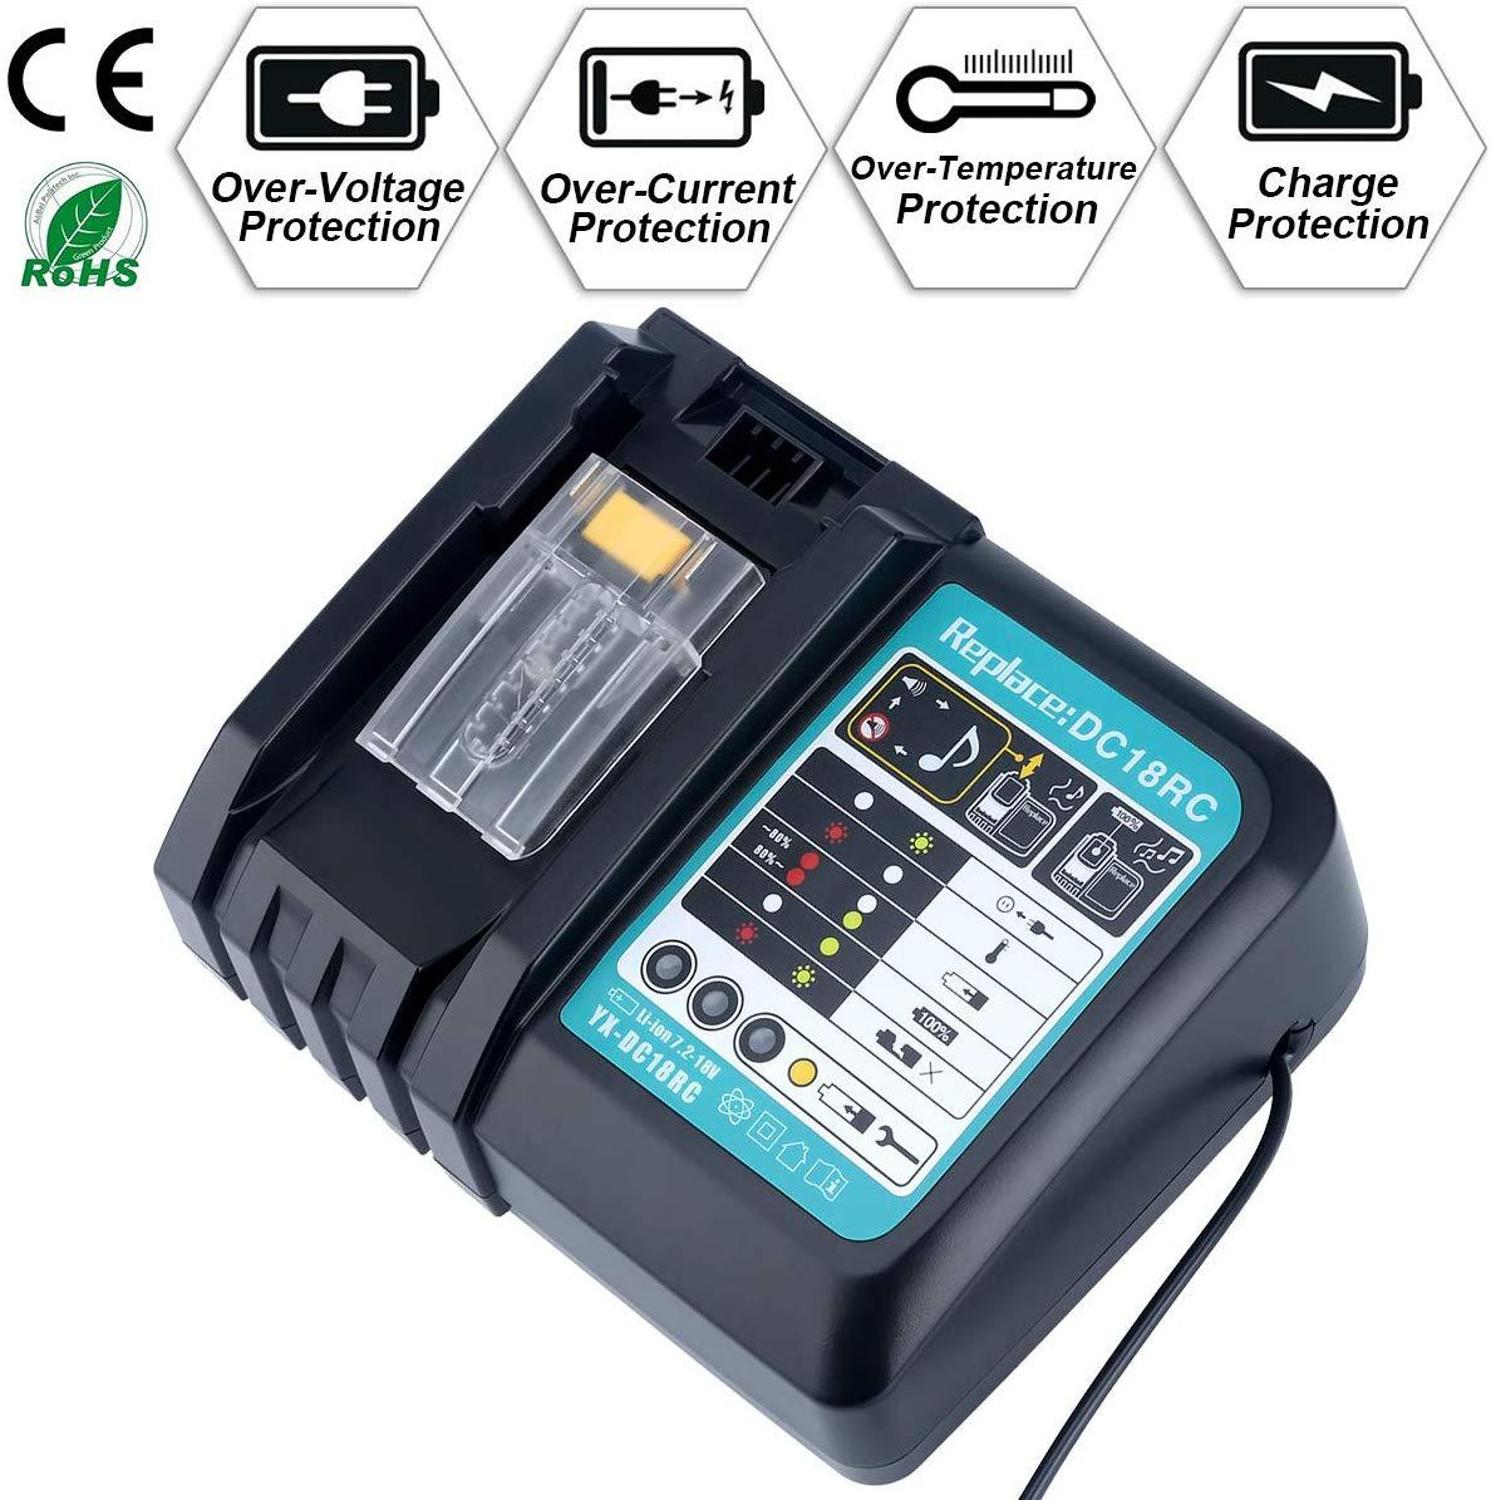 DC18RCt Li ion Battery Charger 3A Charging Current for Makita 14.4V 18V BL1830 Bl1430 DC18RC DC18RA Power tool Charge|Chargers| - AliExpress